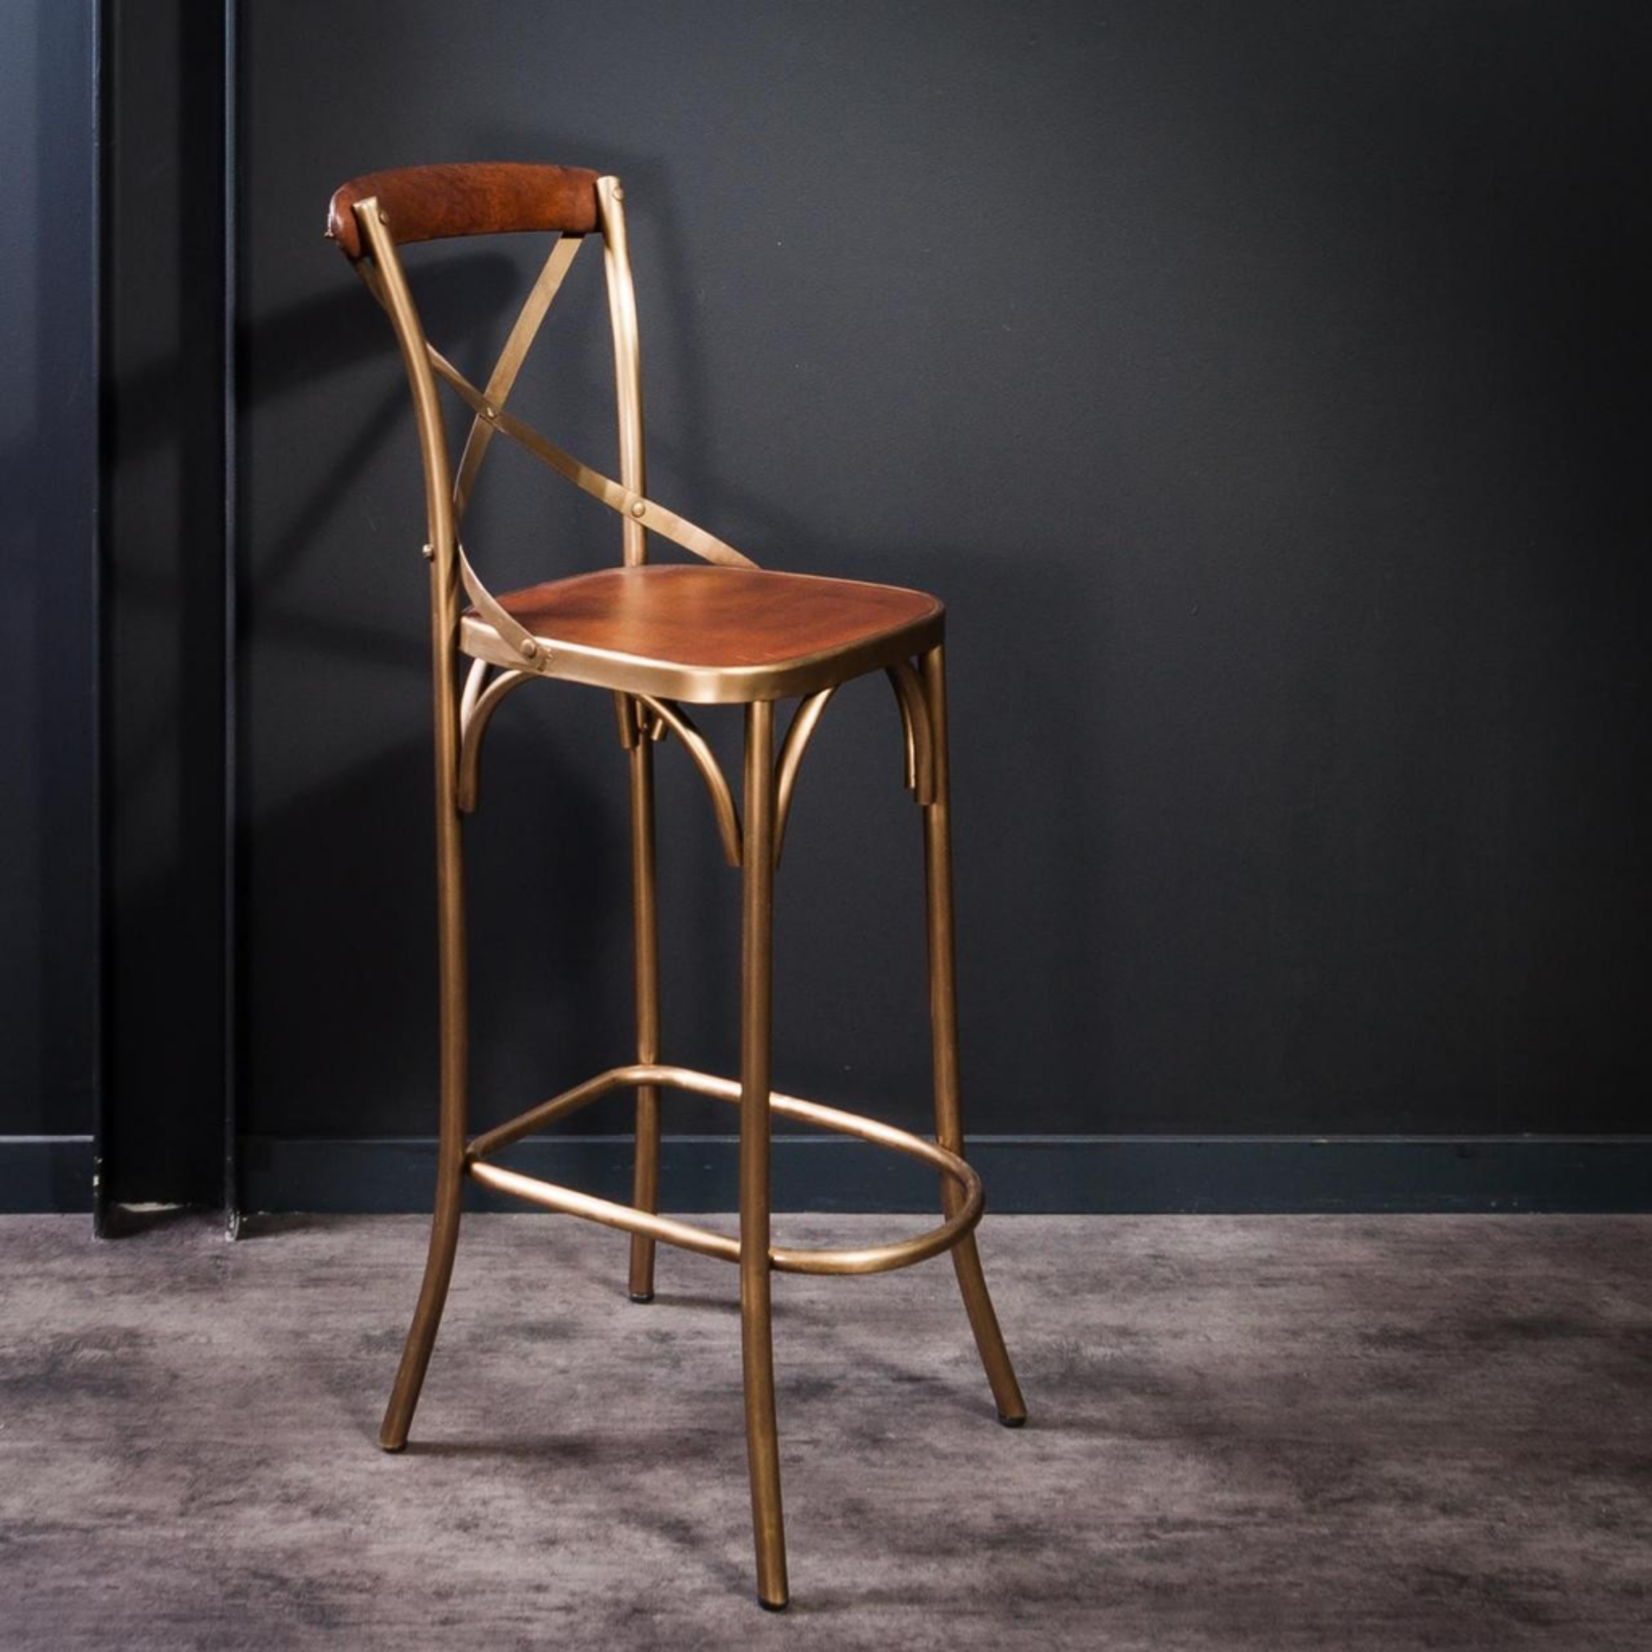 OBJET DE CURIOSITE IRON AND LEATHER BISTROT HIGH CHAIR